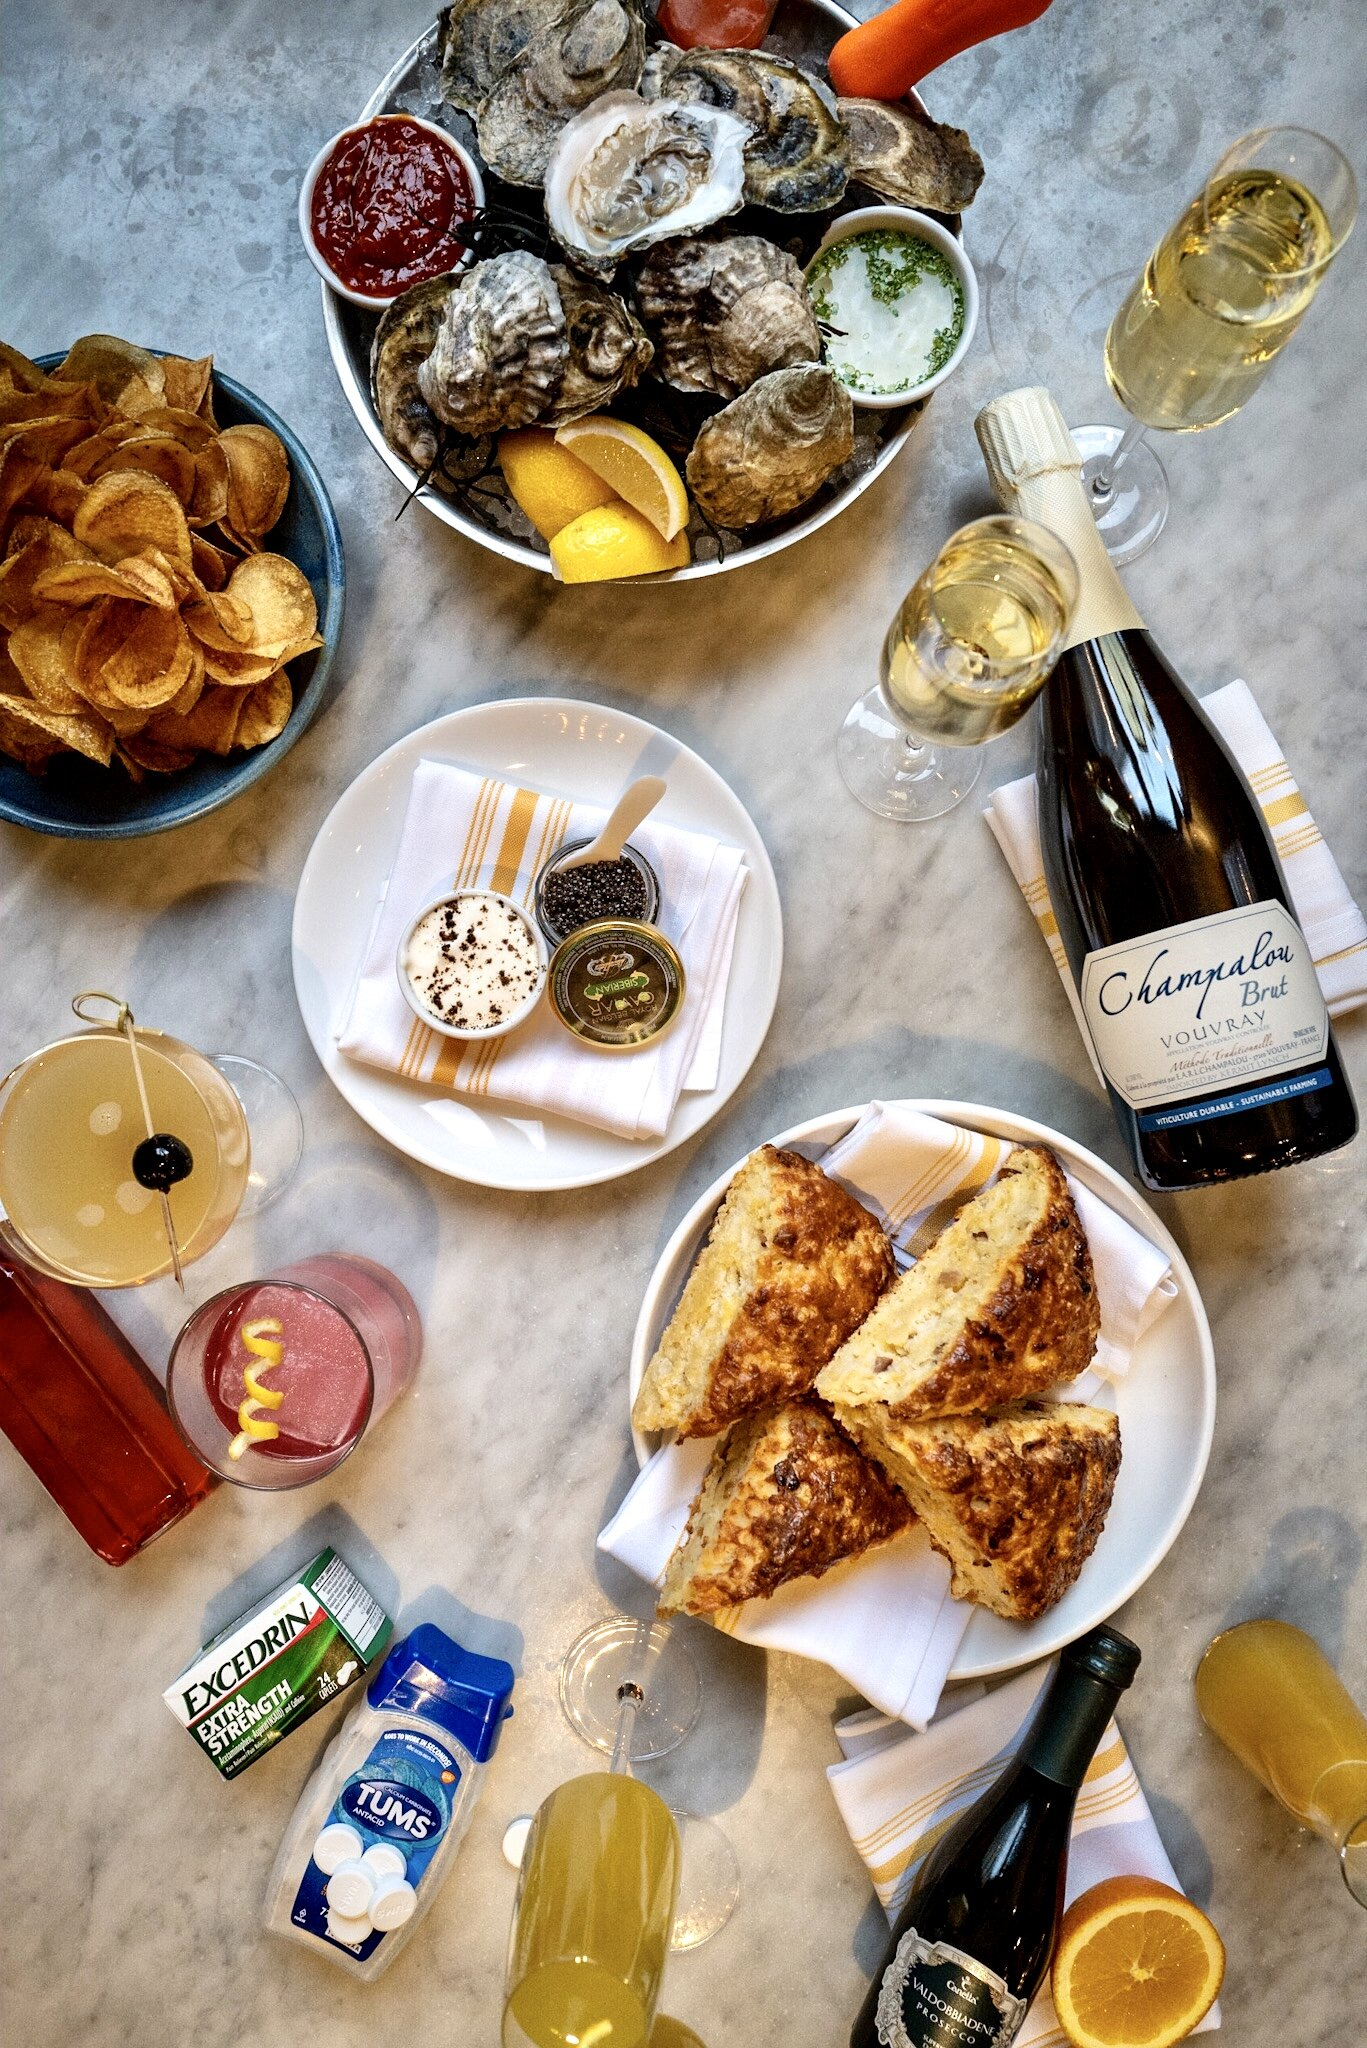 NYE Kit from Waypoint; features Oysters, cocktails, champagne, hangover cures, and more.